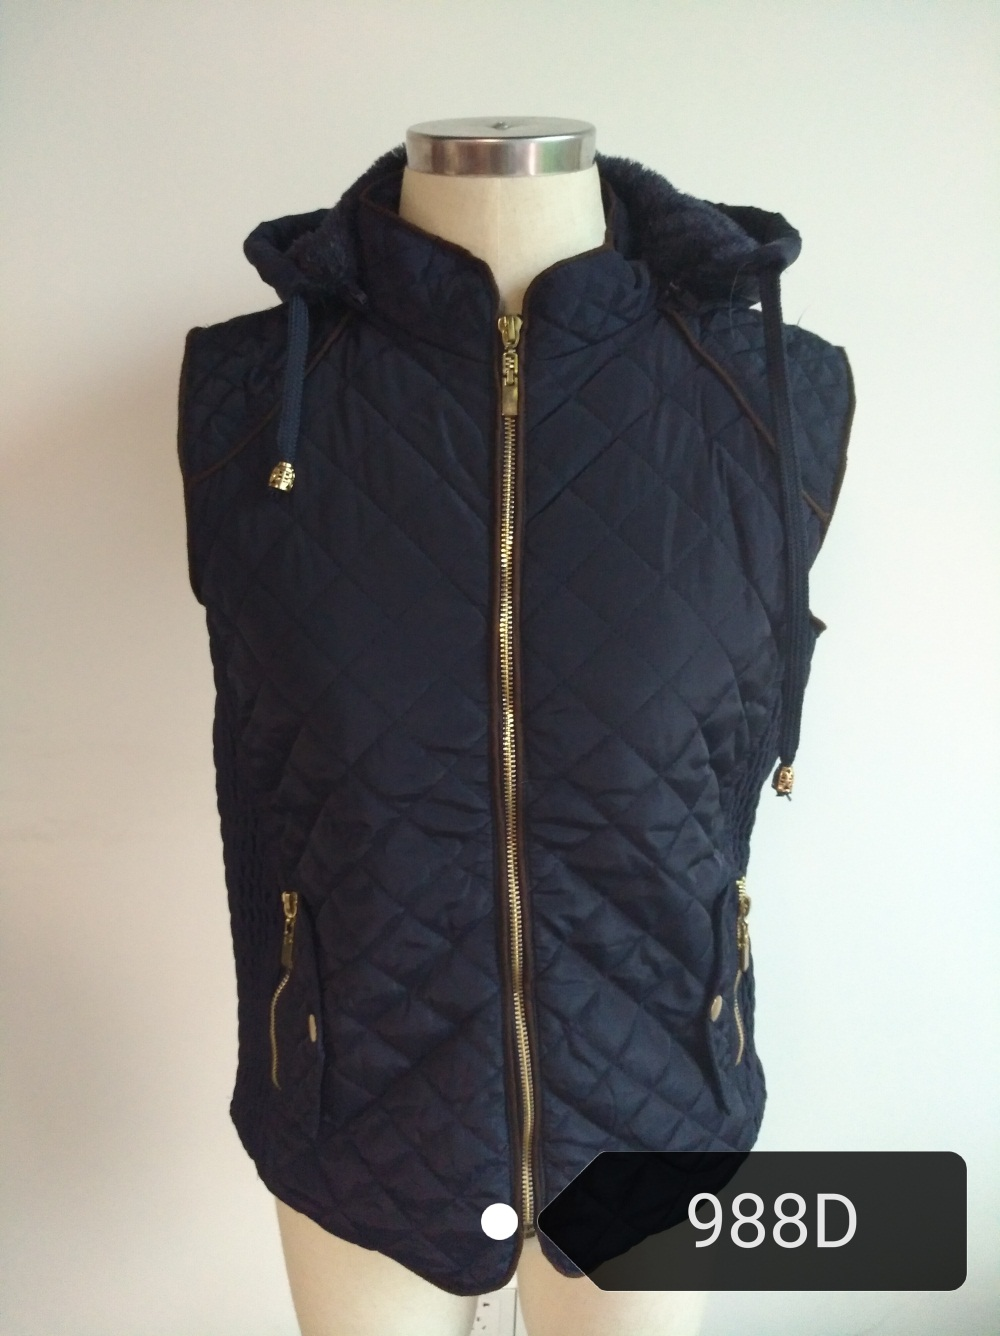 women vest,fashion vest,latest winter jacket for women 988D